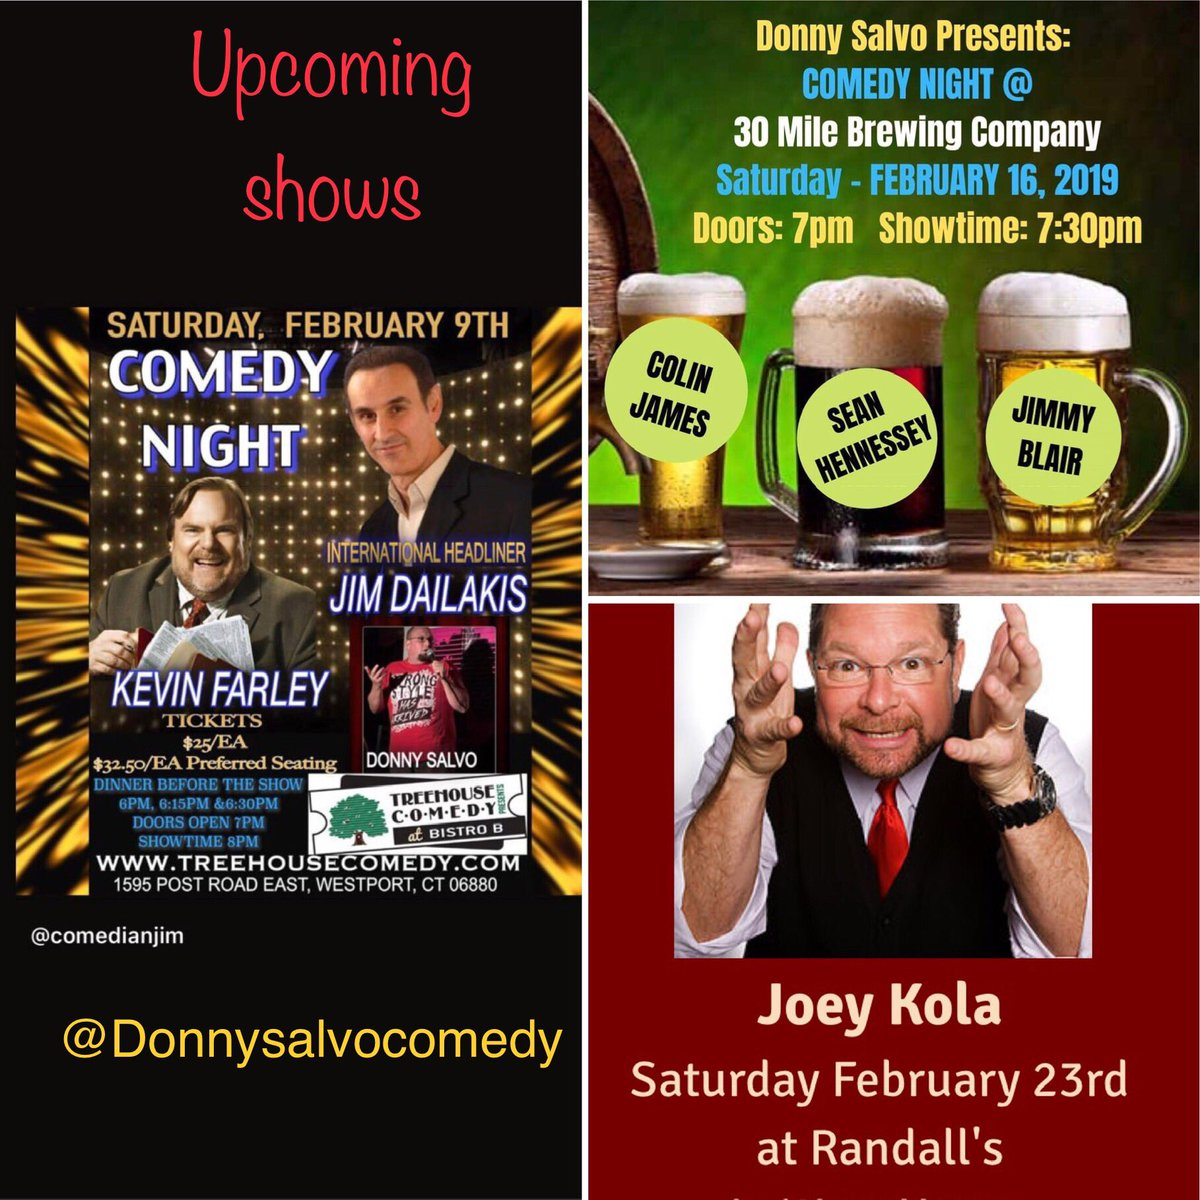 Upcoming shows!!!! @treehousecomedy @30MileBrewingCo #CTcomedy #Saturday #makethemlaugh #beer #laughter